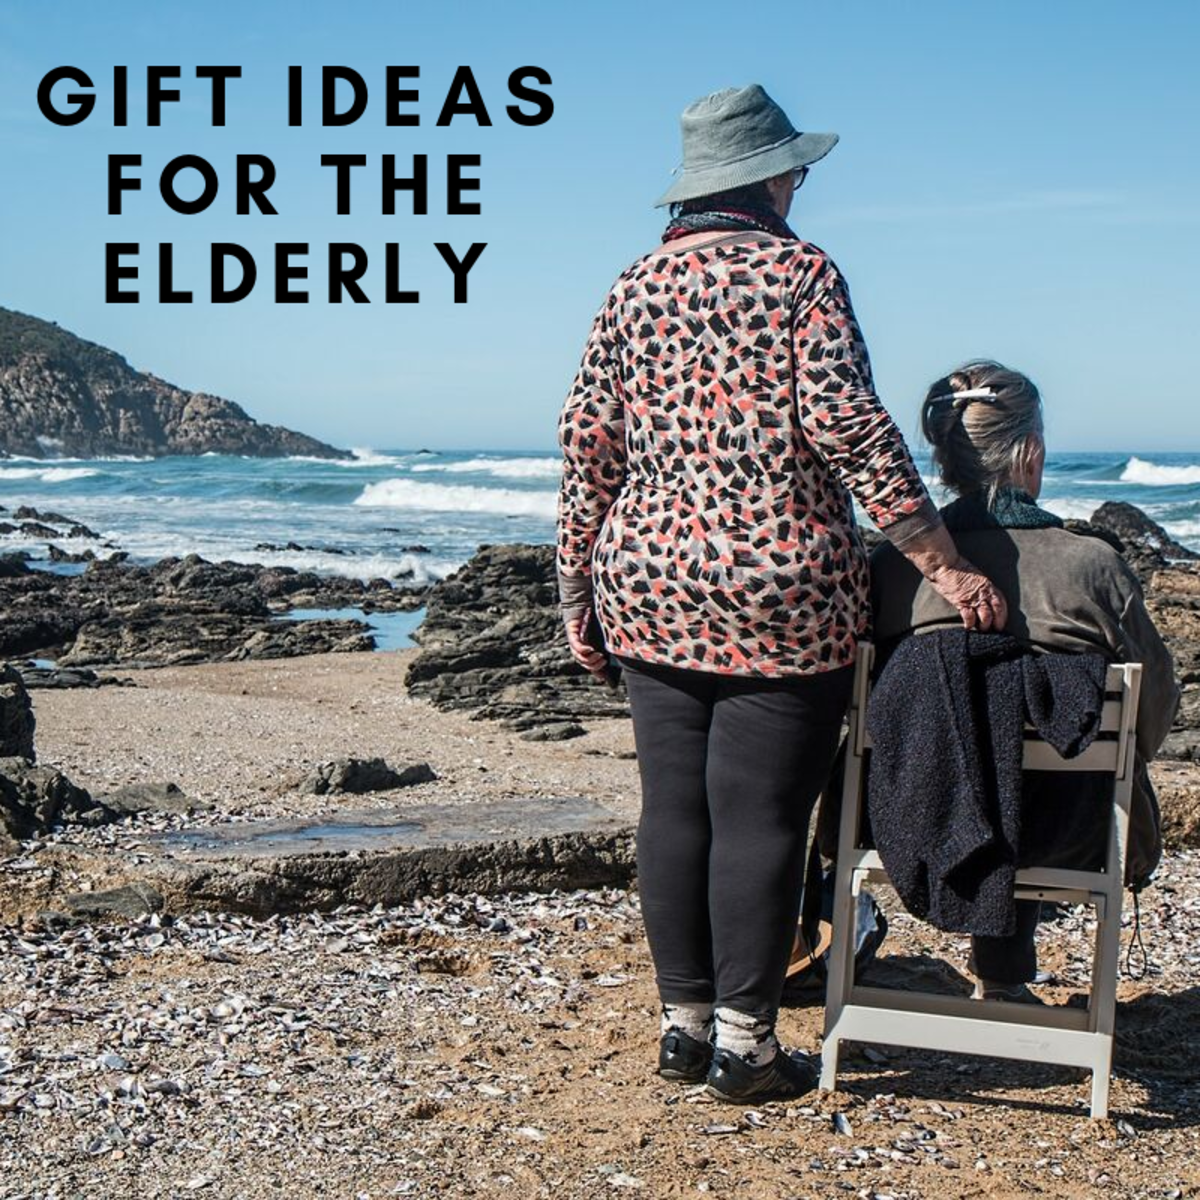 This article will provide a list of possible gift ideas for the elderly persons in your life.